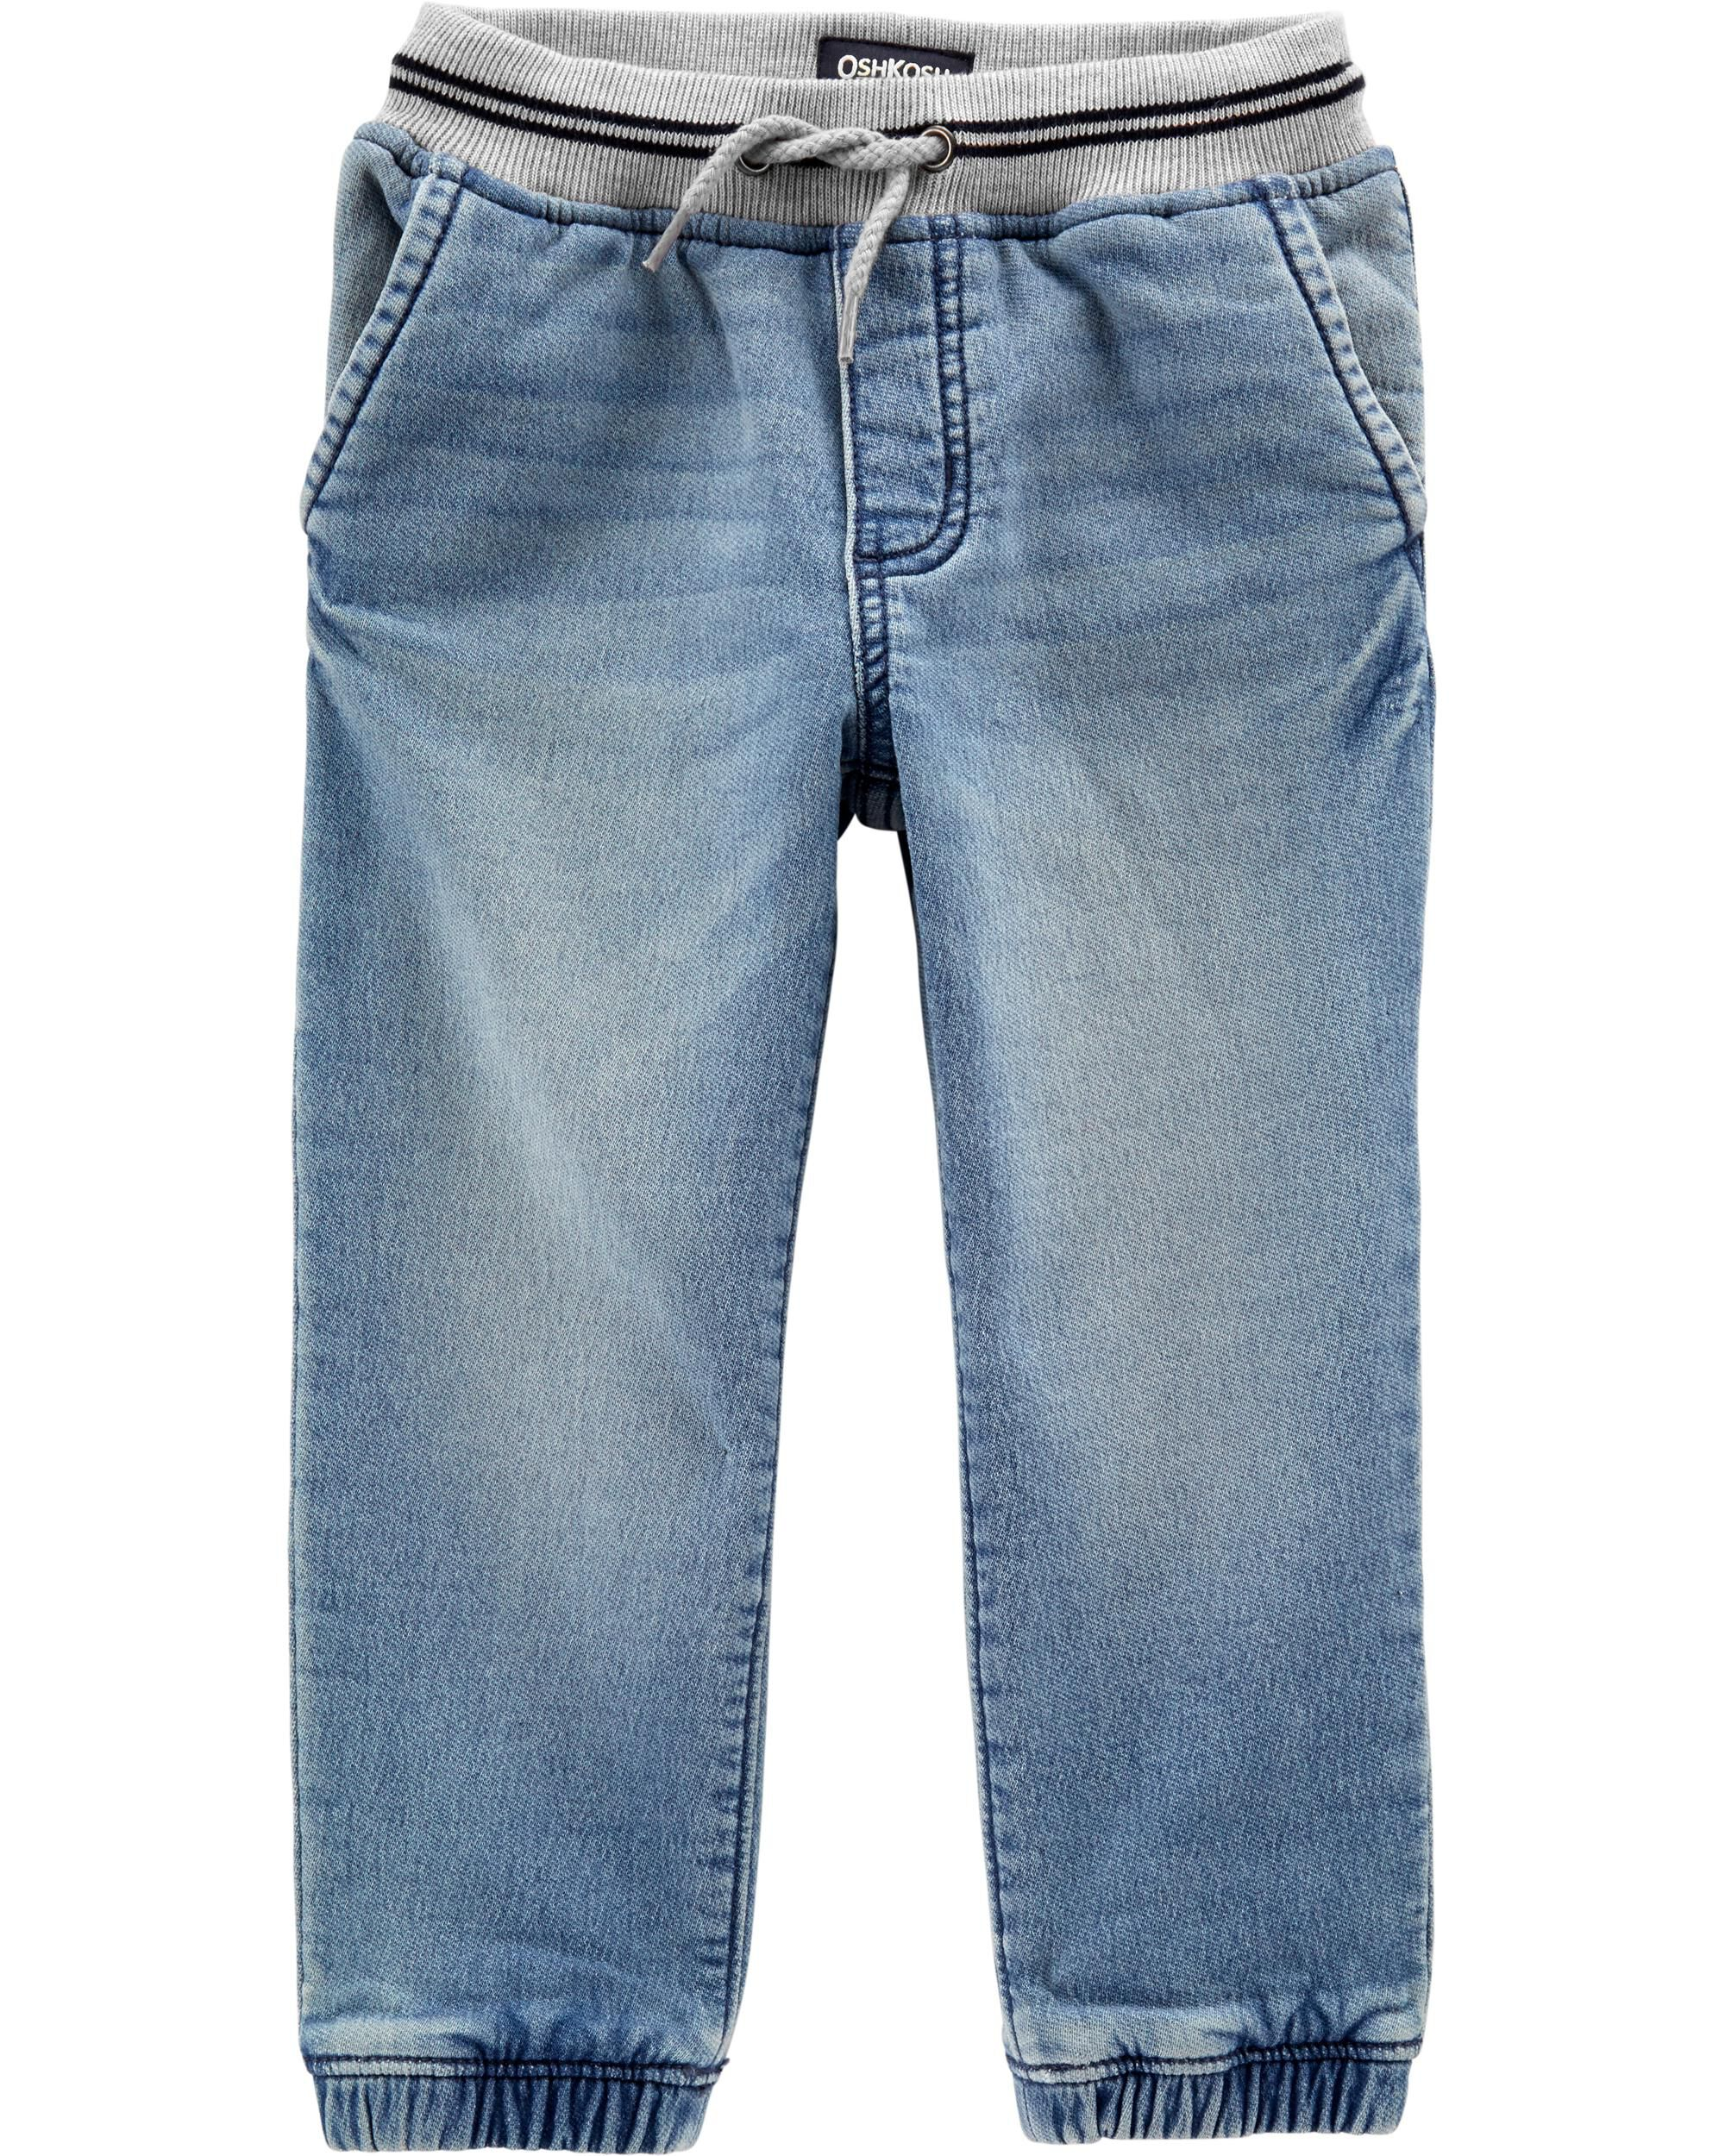 *Clearance*  Pull-On Knit Denim Joggers